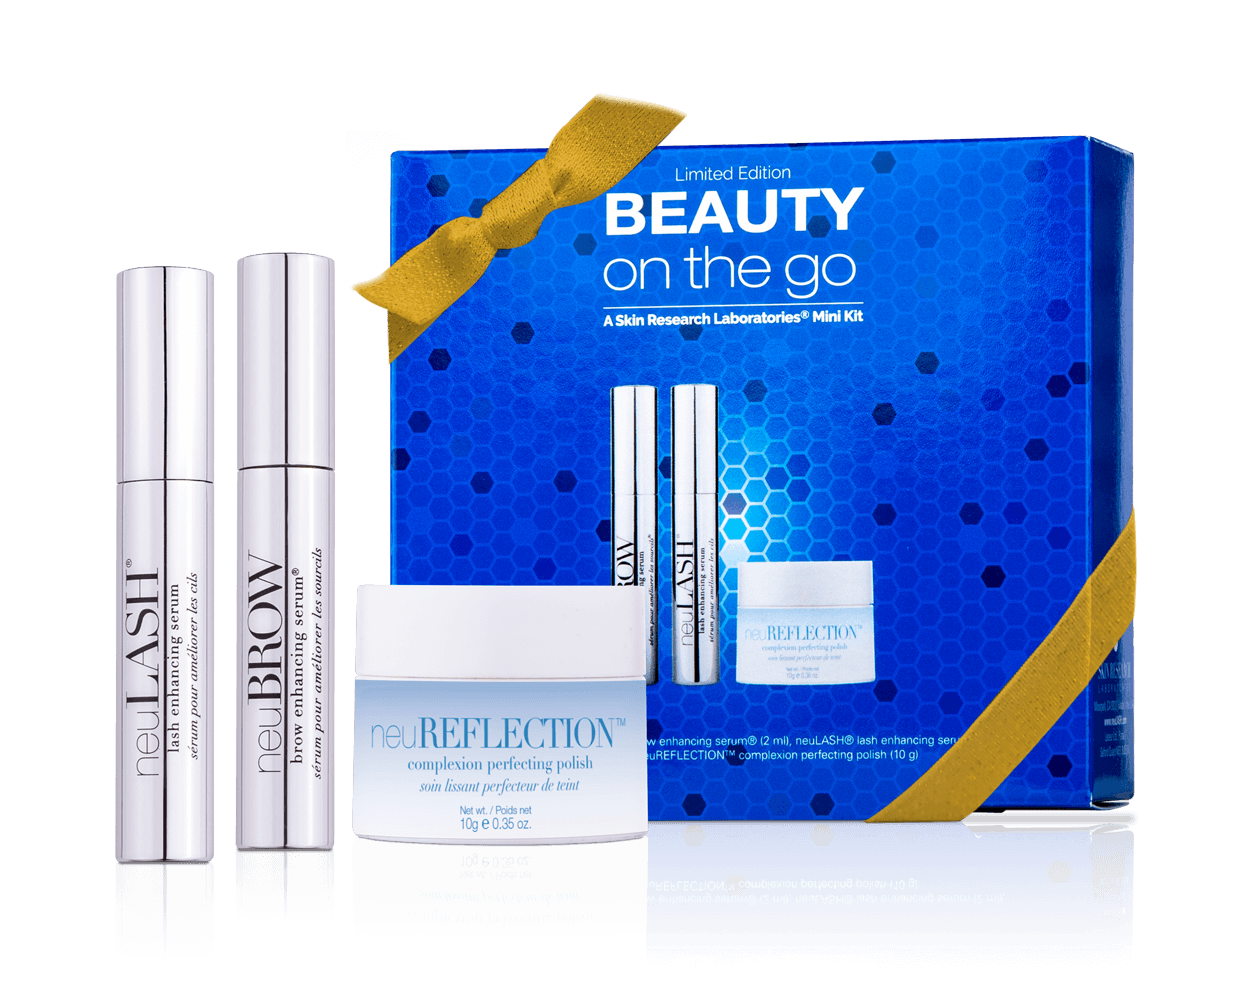 beauty on the go with the contents next to it